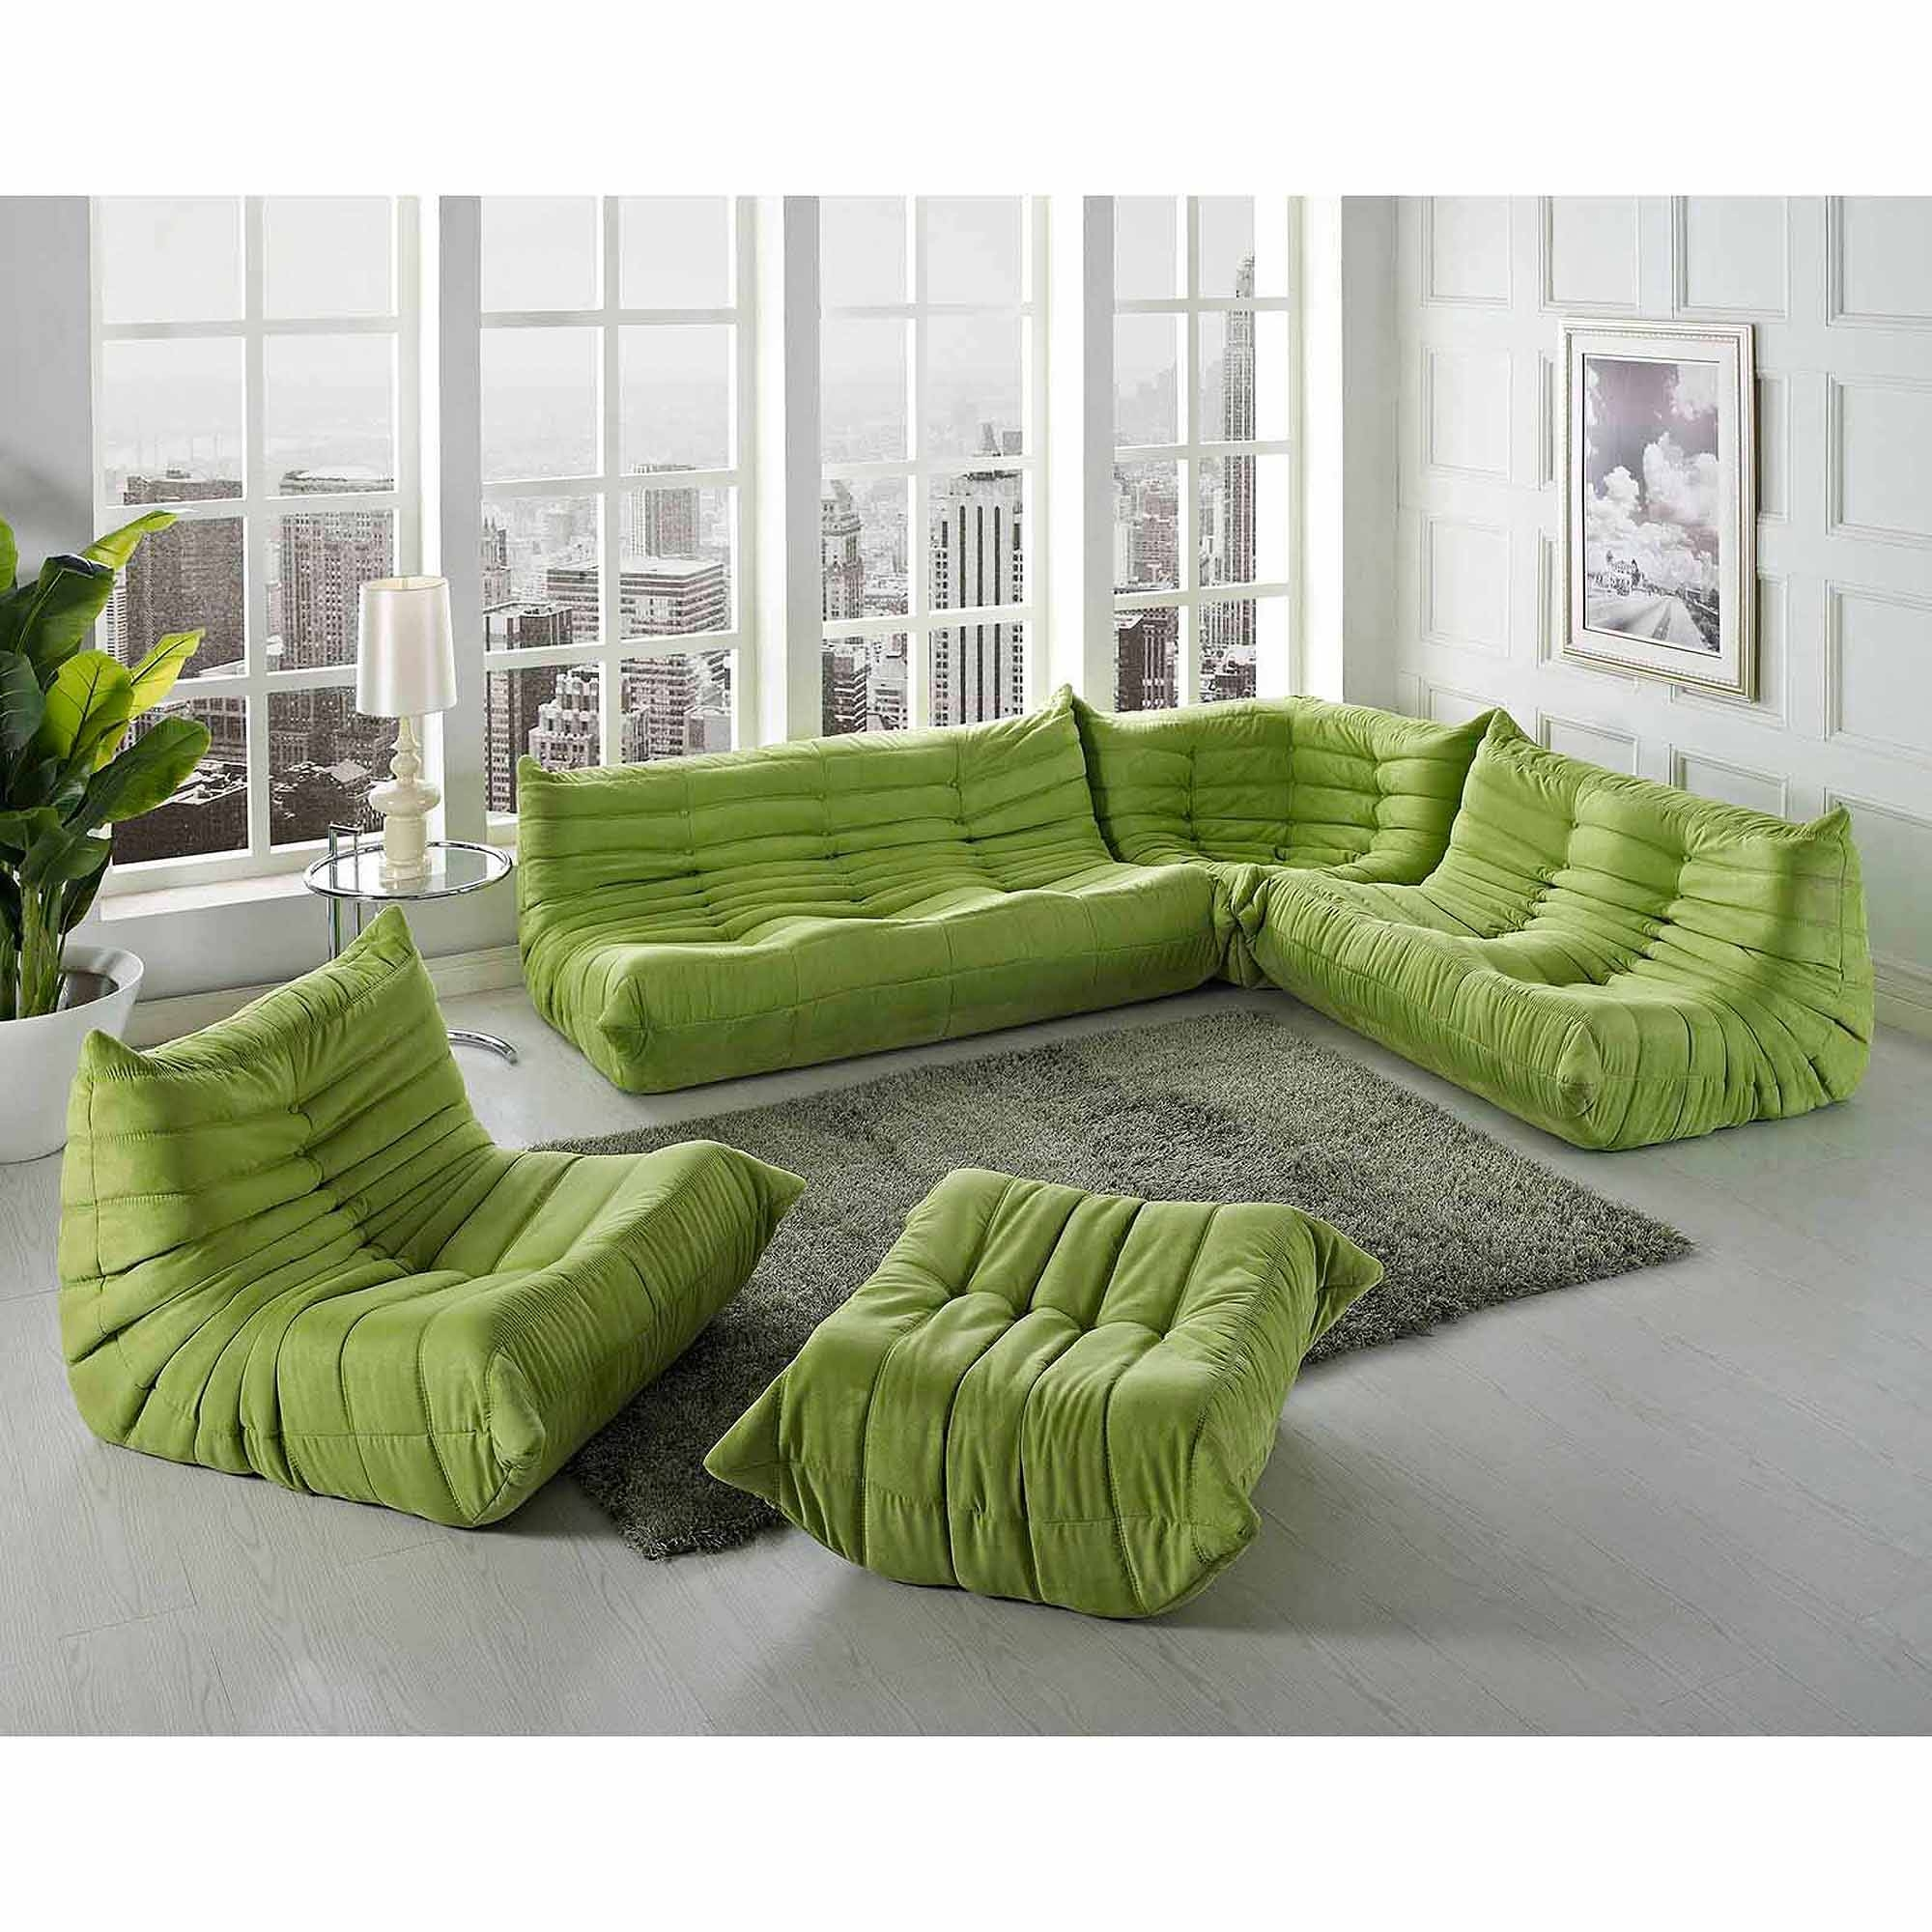 30 s Green Sectional Sofa